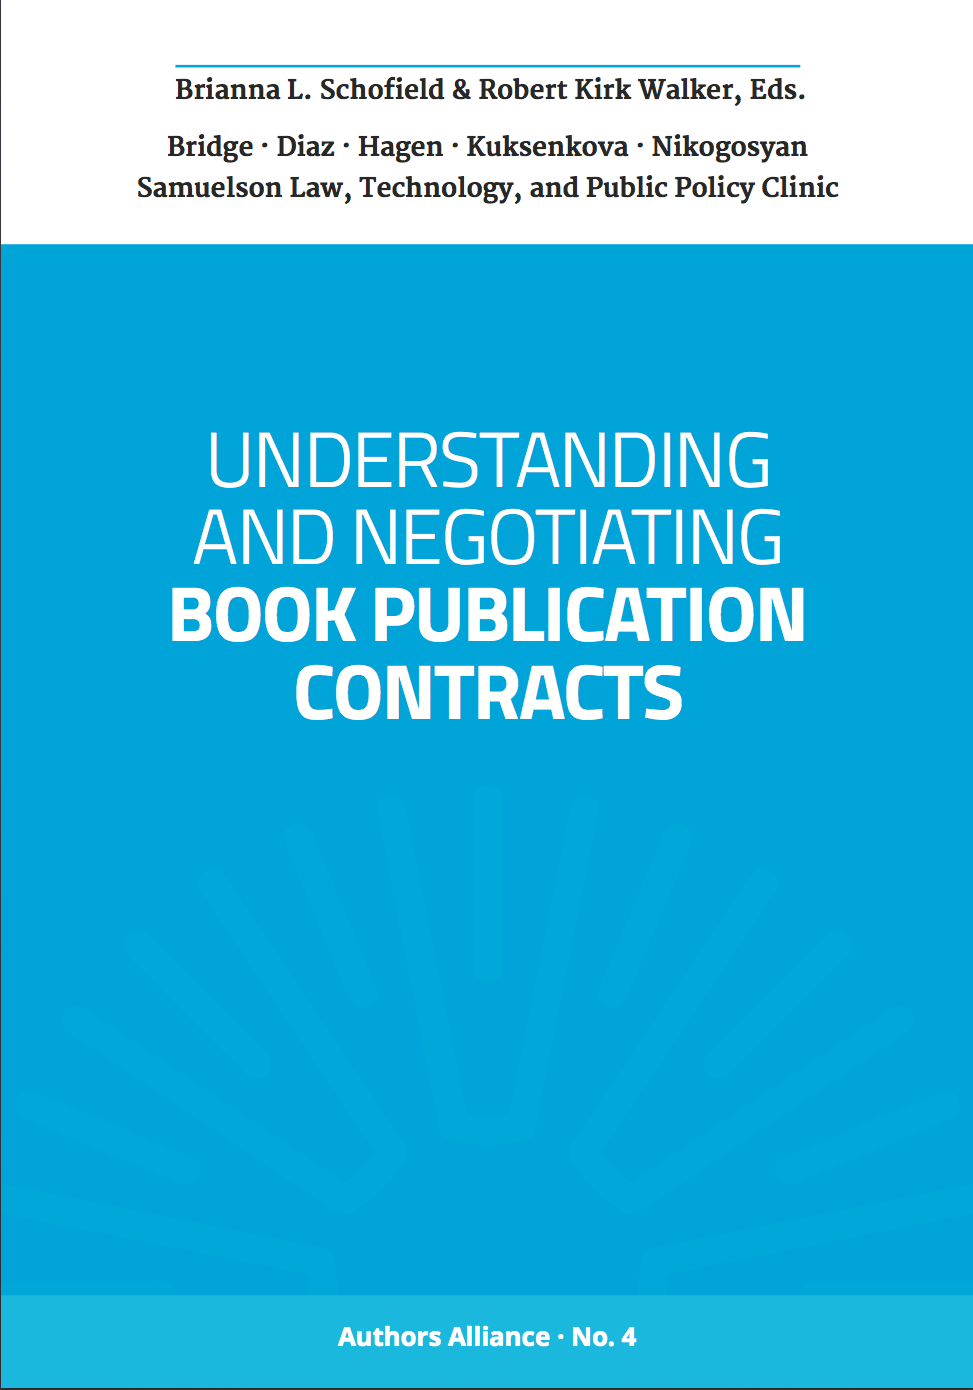 Authors Alliance Guide to Understanding and Negotiating Book Publication Contracts